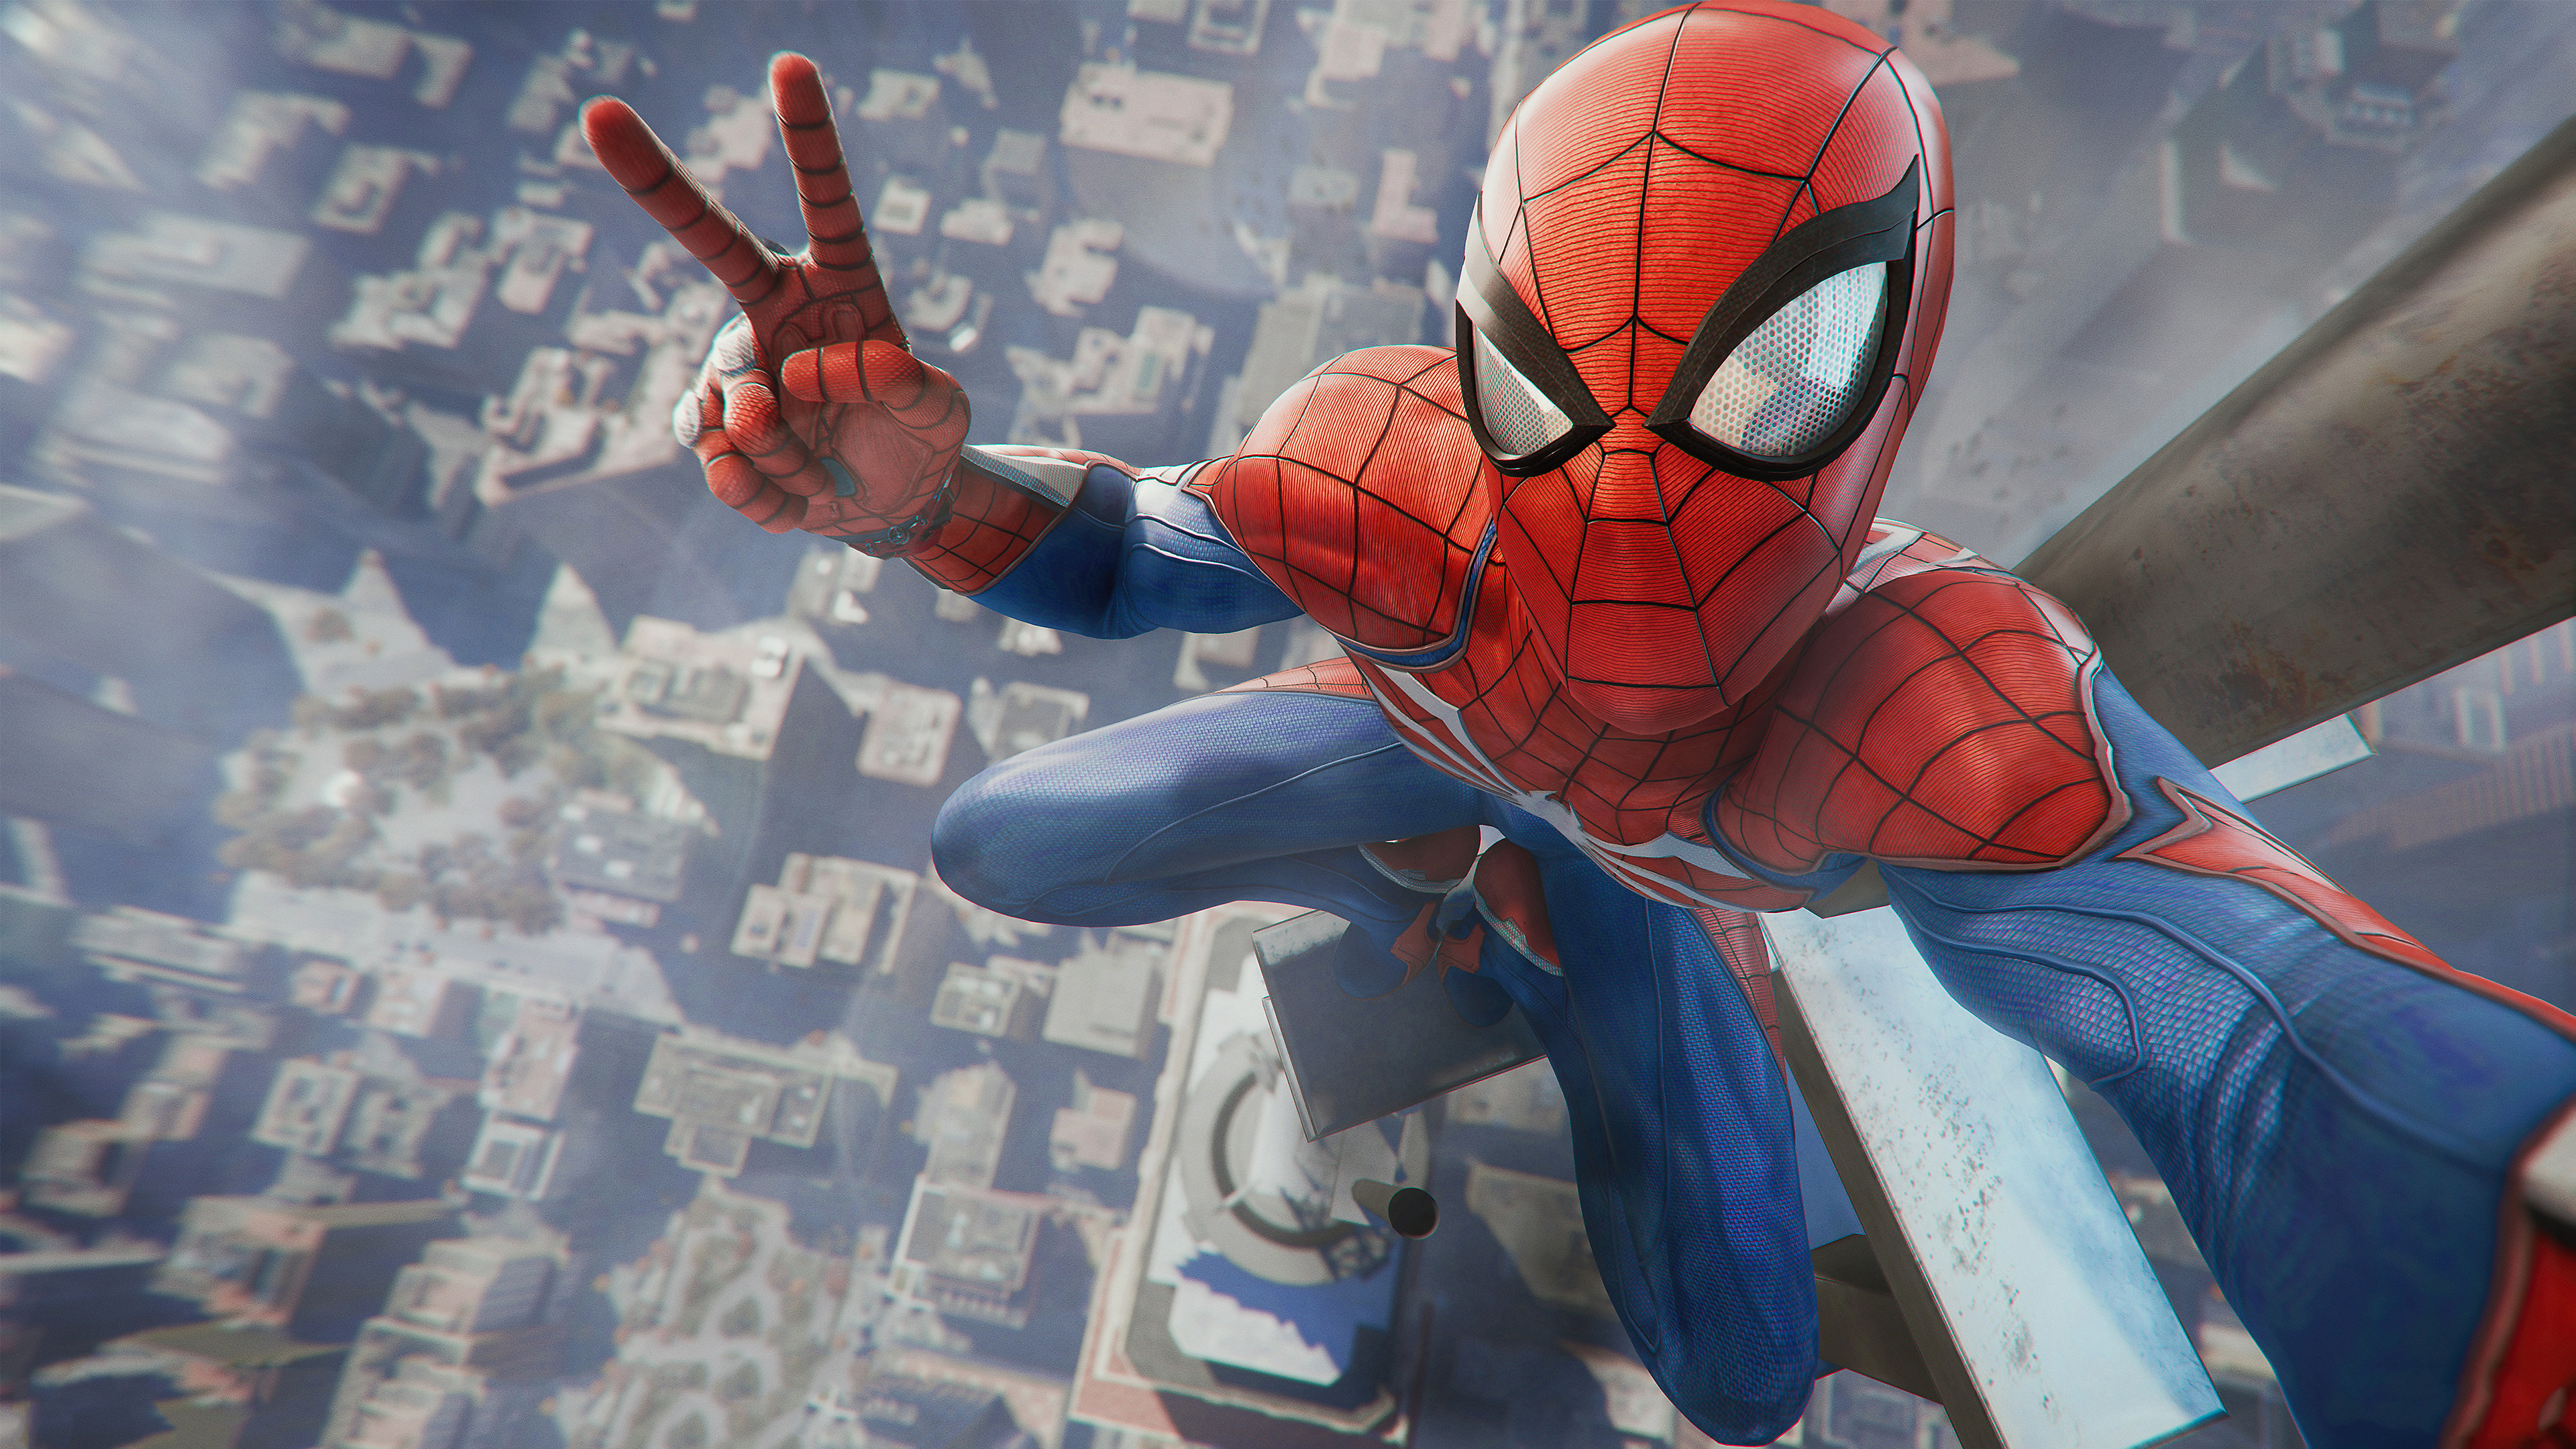 Marvel Spiderman Hd Games 4k Wallpapers Images